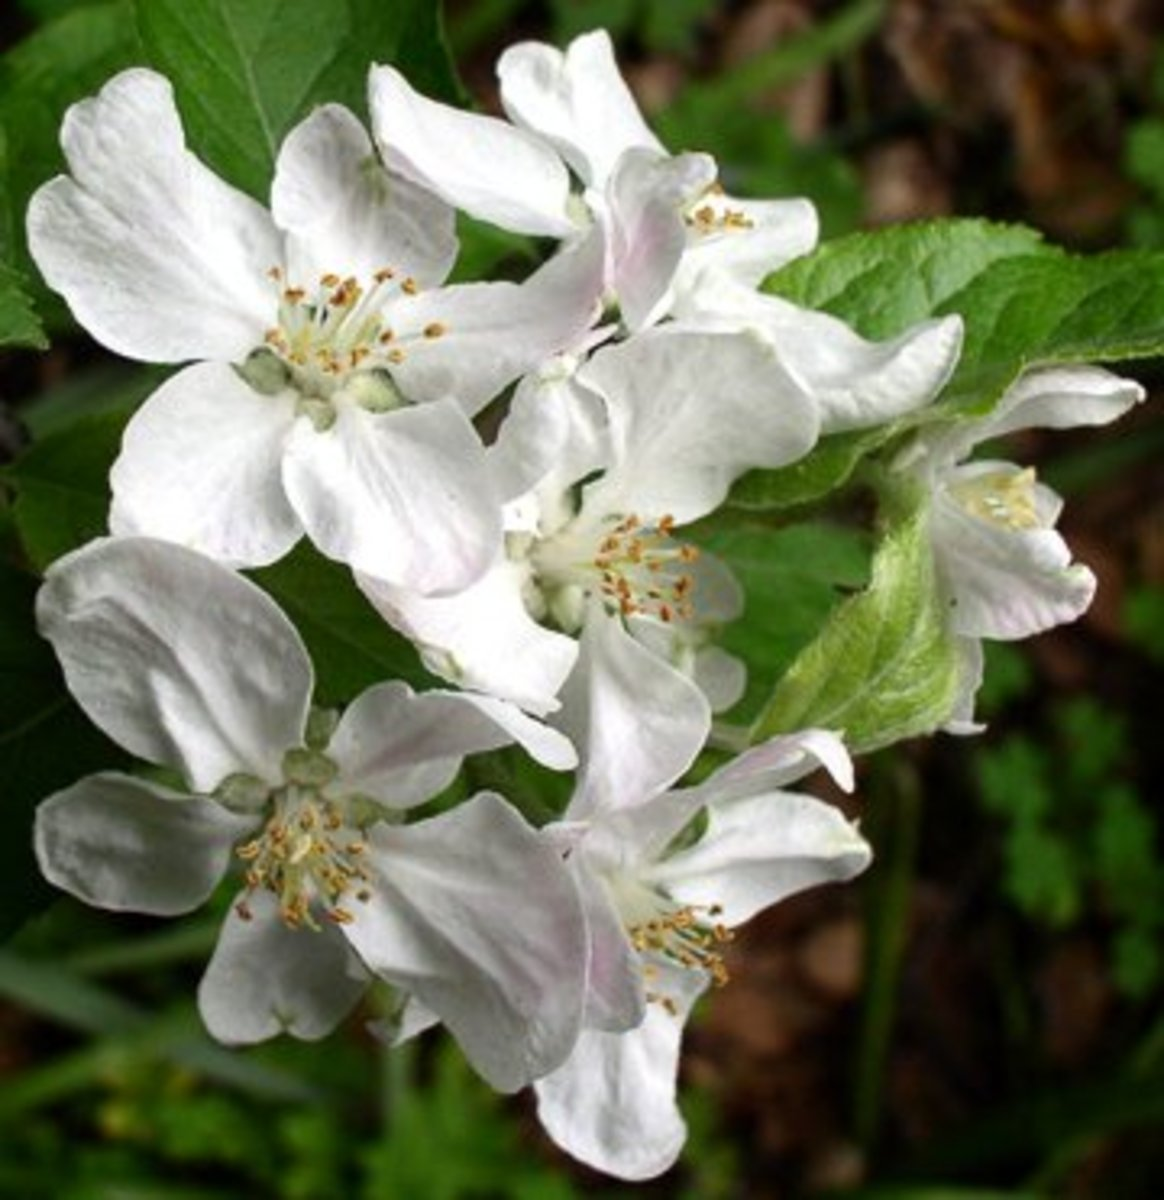 Fuji apple blossoms.